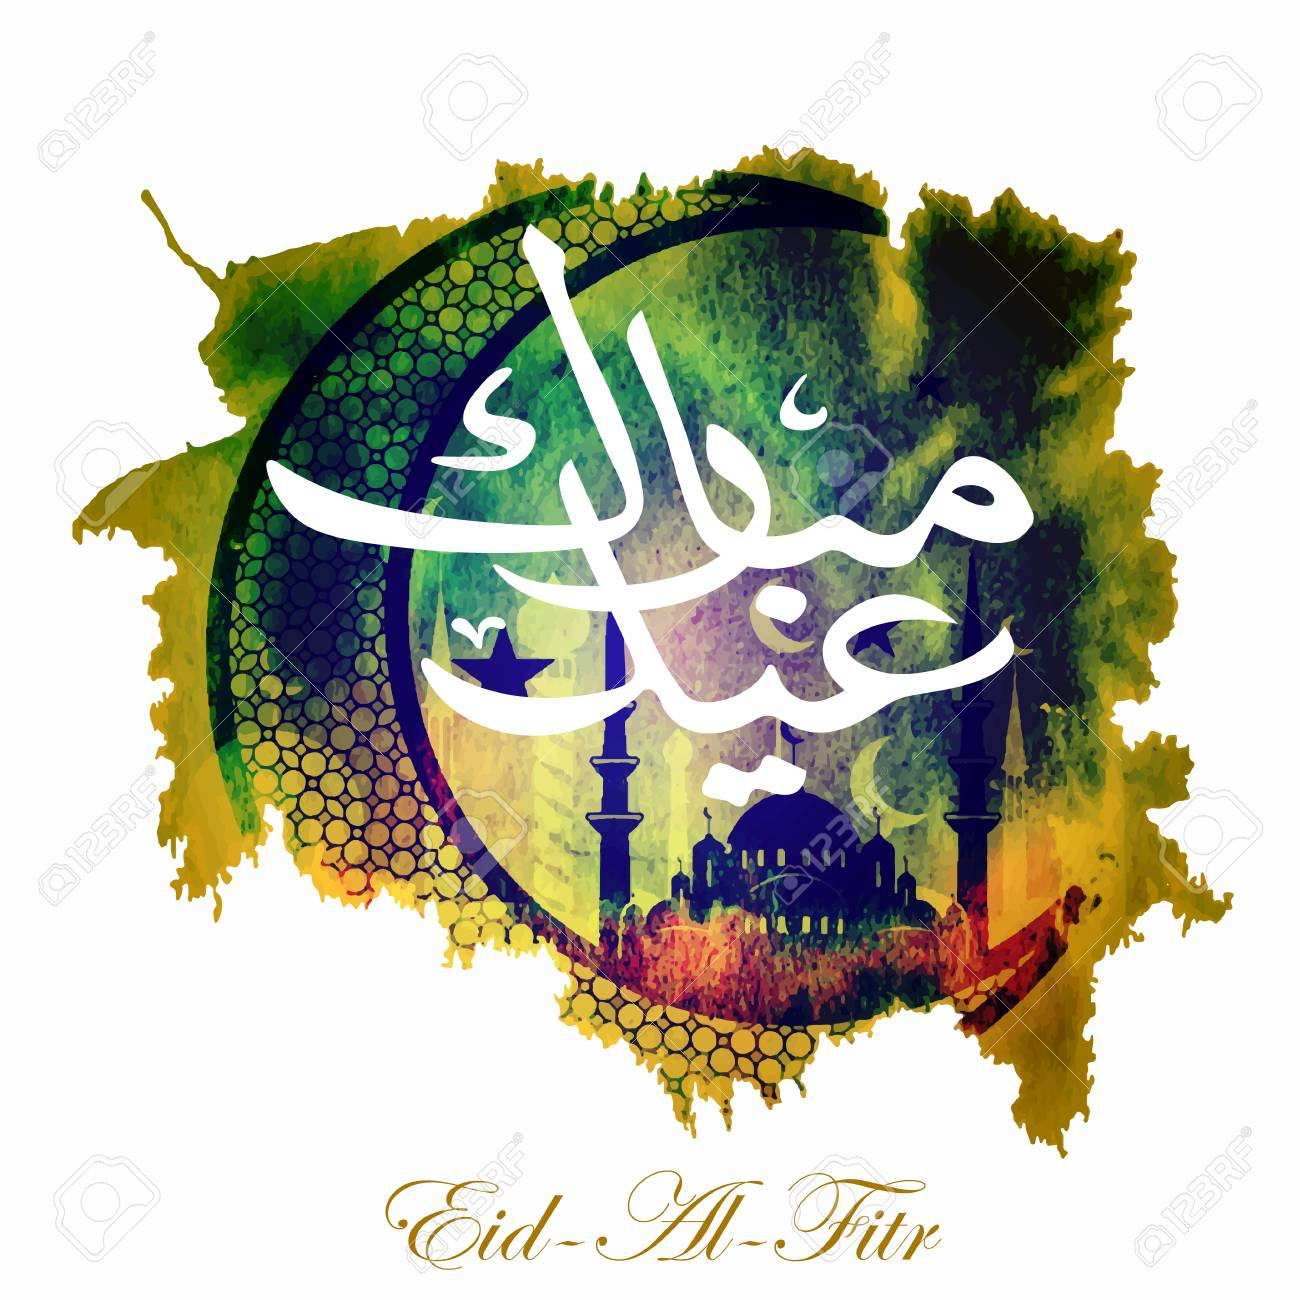 Simple Arabic Eid Al-Fitr Feast - 78762214-calligraphy-of-arabic-text-eid-al-fitr-feast-of-breaking-the-fast-holiday-greeting-card-in-retro-sty  Pic_159816 .jpg